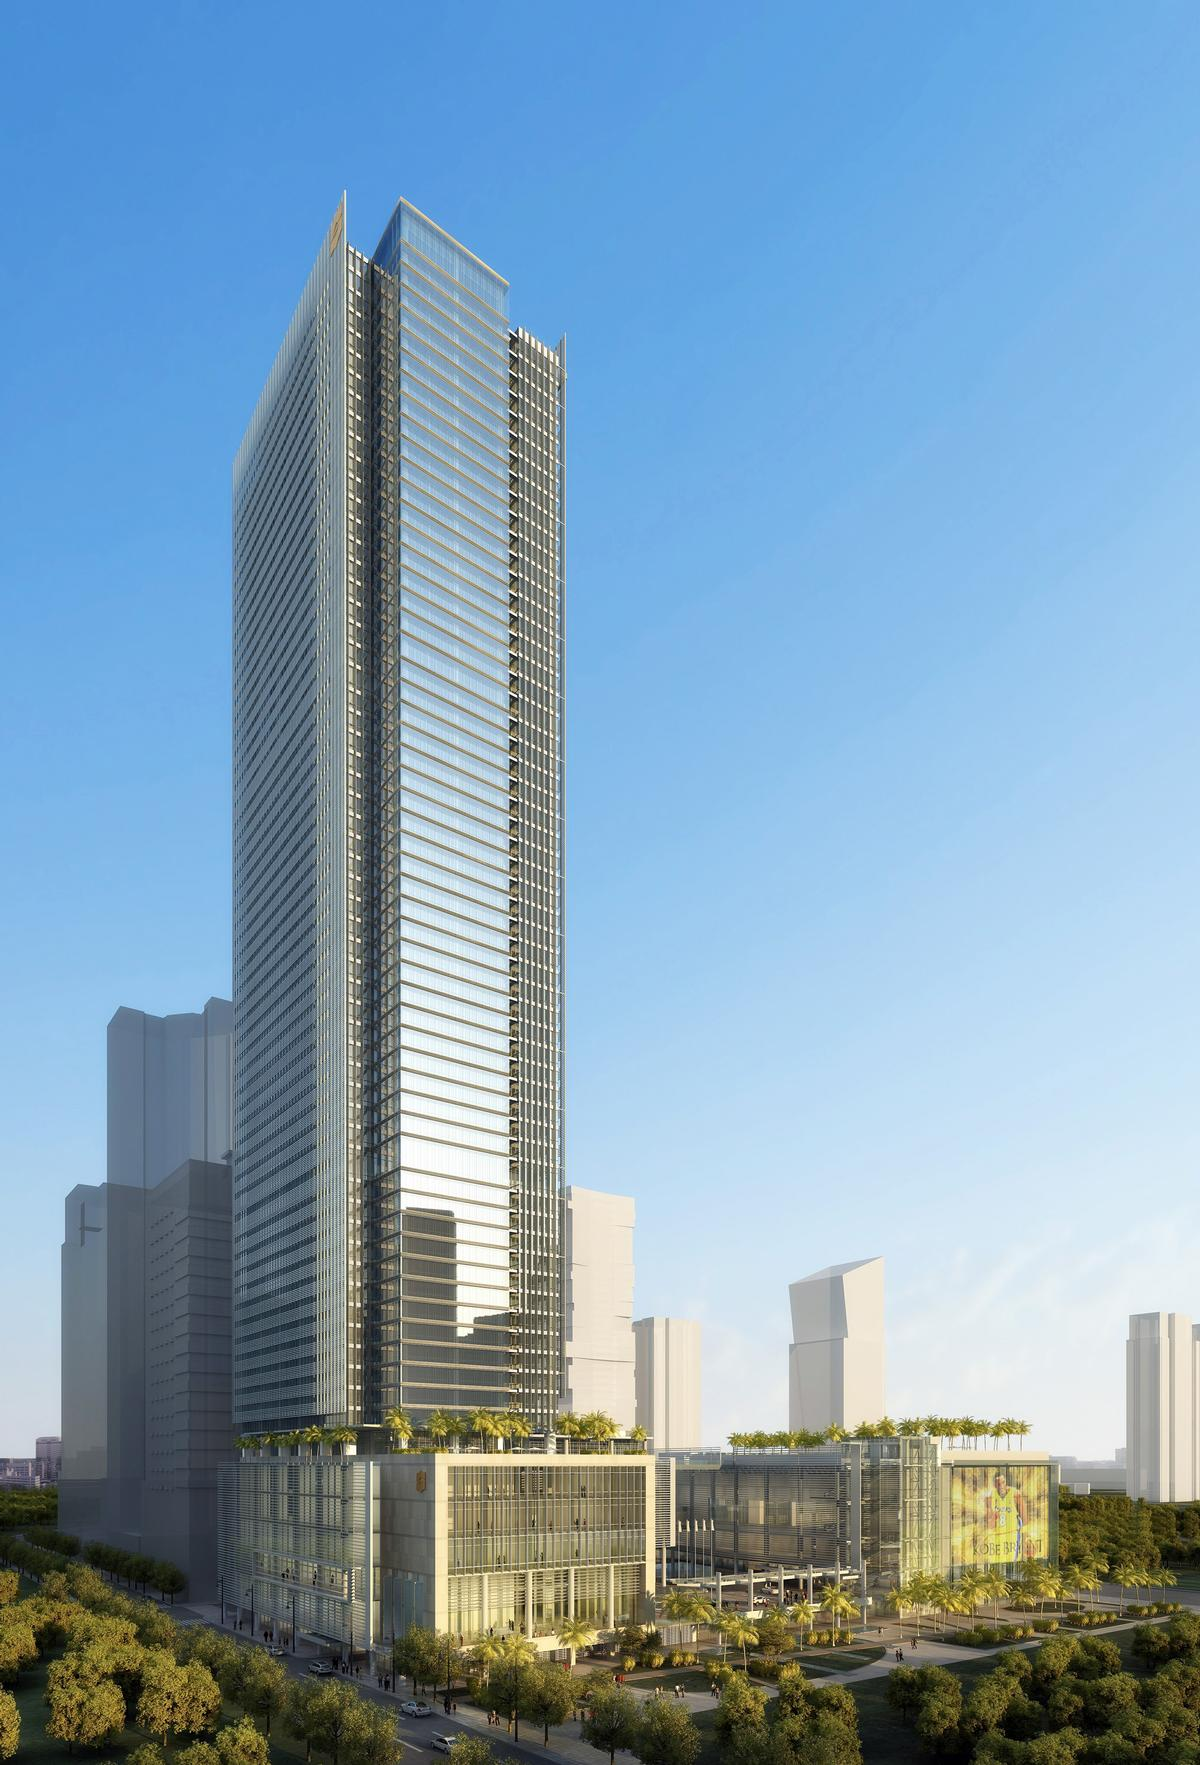 At 250m tall, the Shangri-La at the Fort, Manila will be one of the tallest buildings in the country / Shangri-La